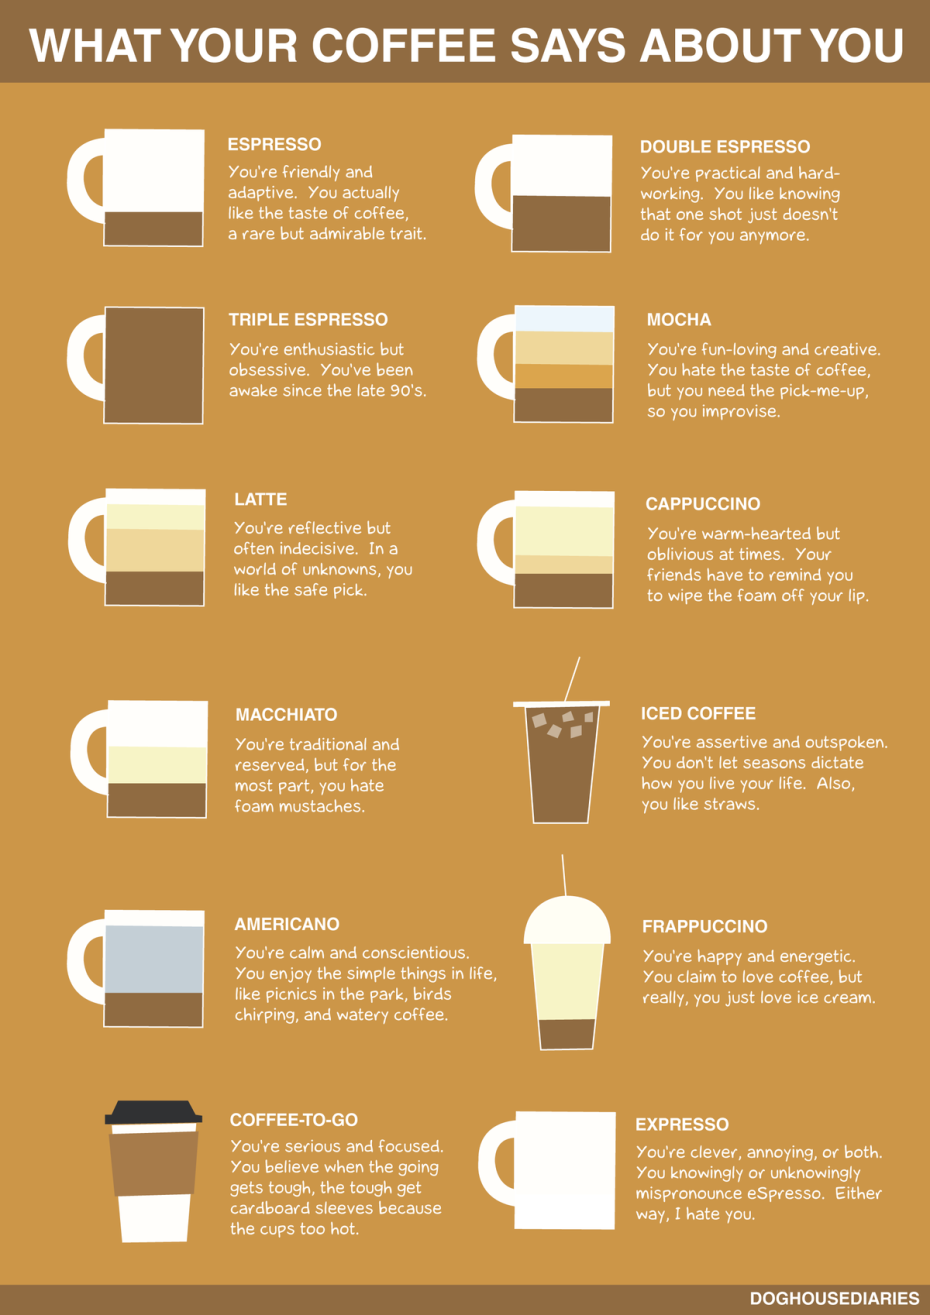 Mashable-What-Your-Coffee-Says-About-You-930x1315